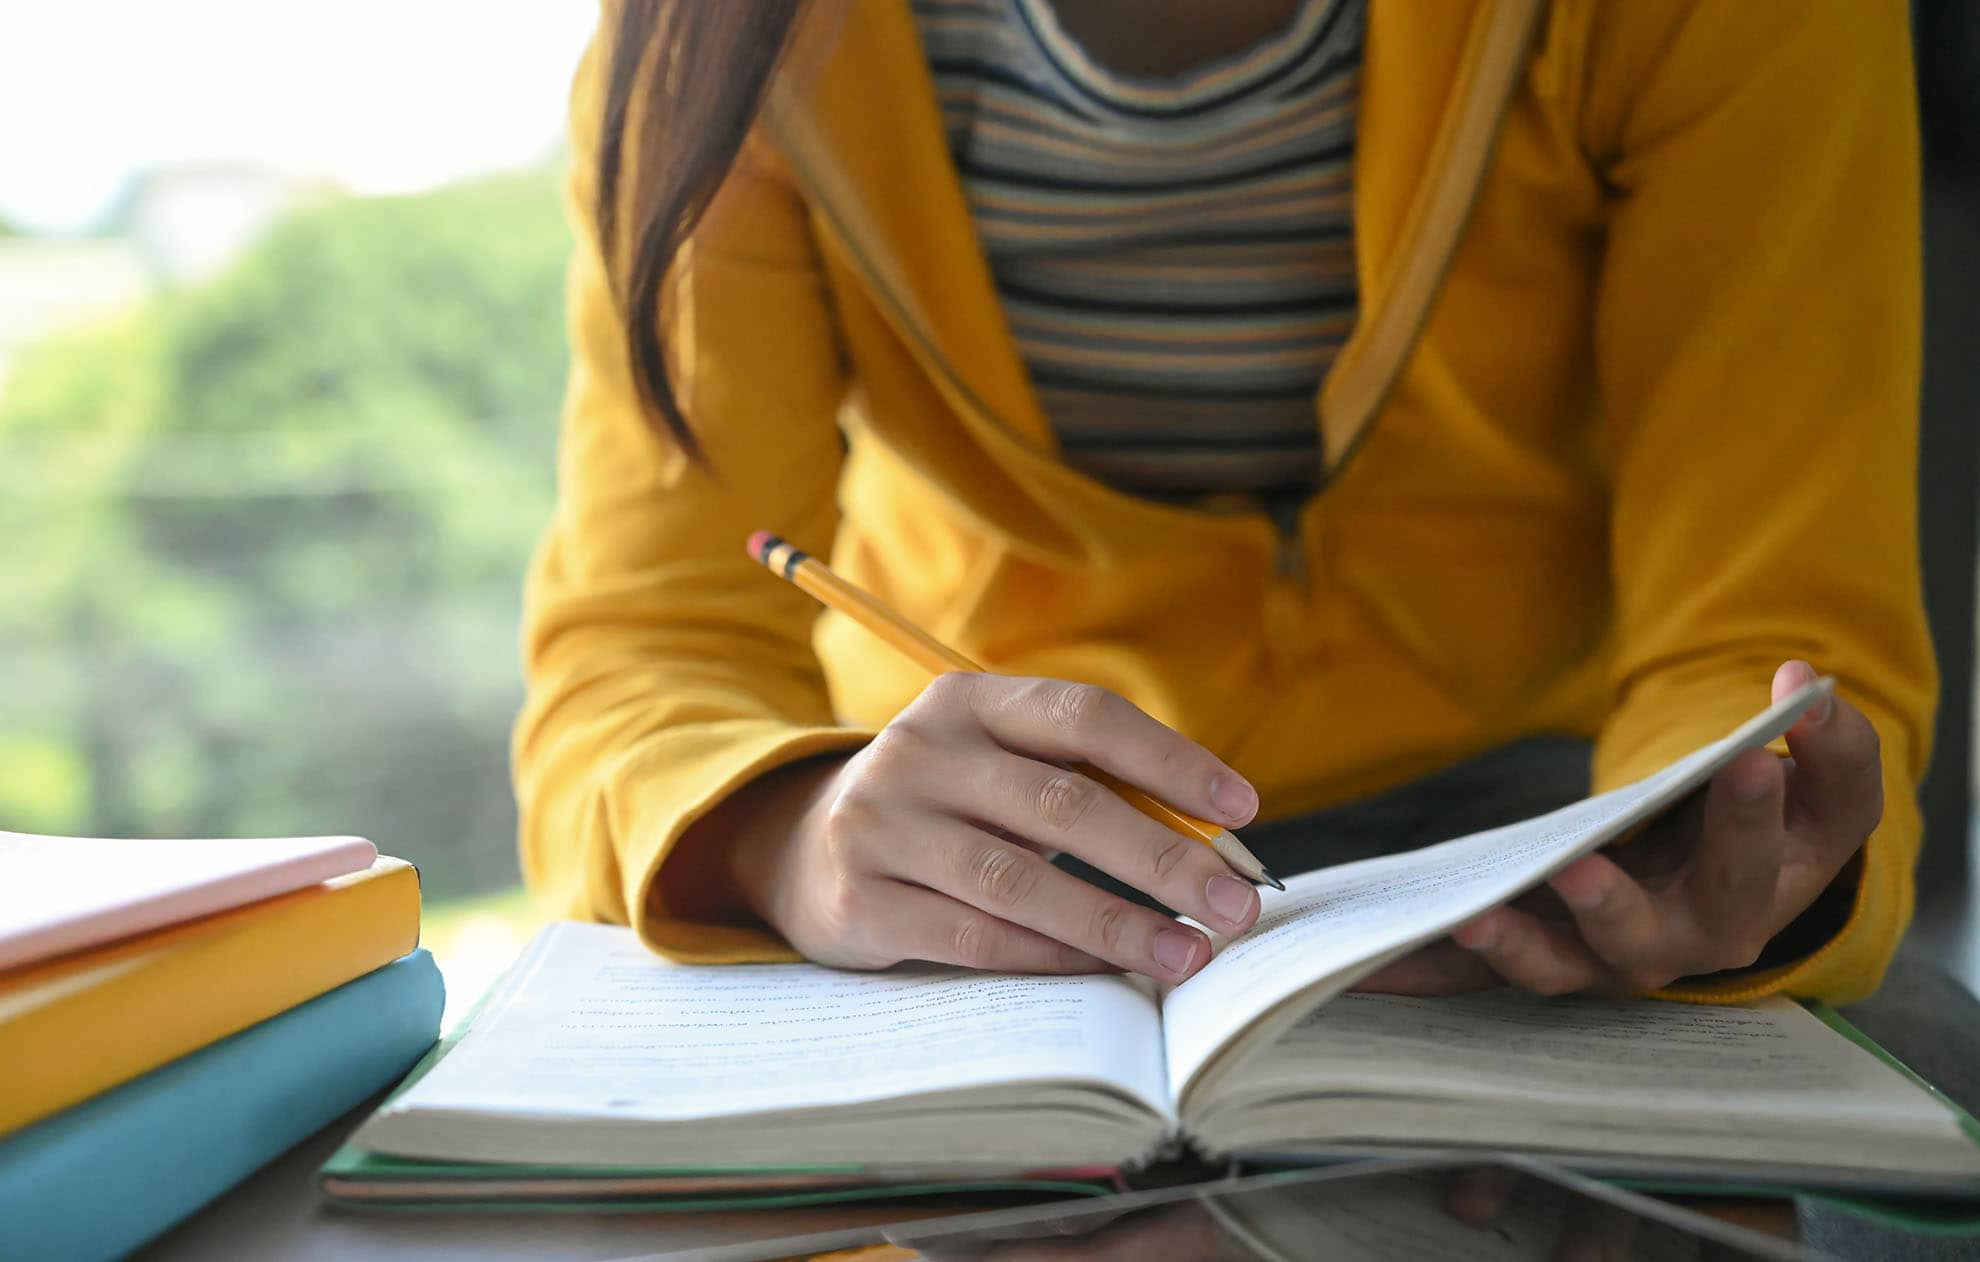 students-are-reading-books-and-taking-notes-for-ex-S4URCA8-min